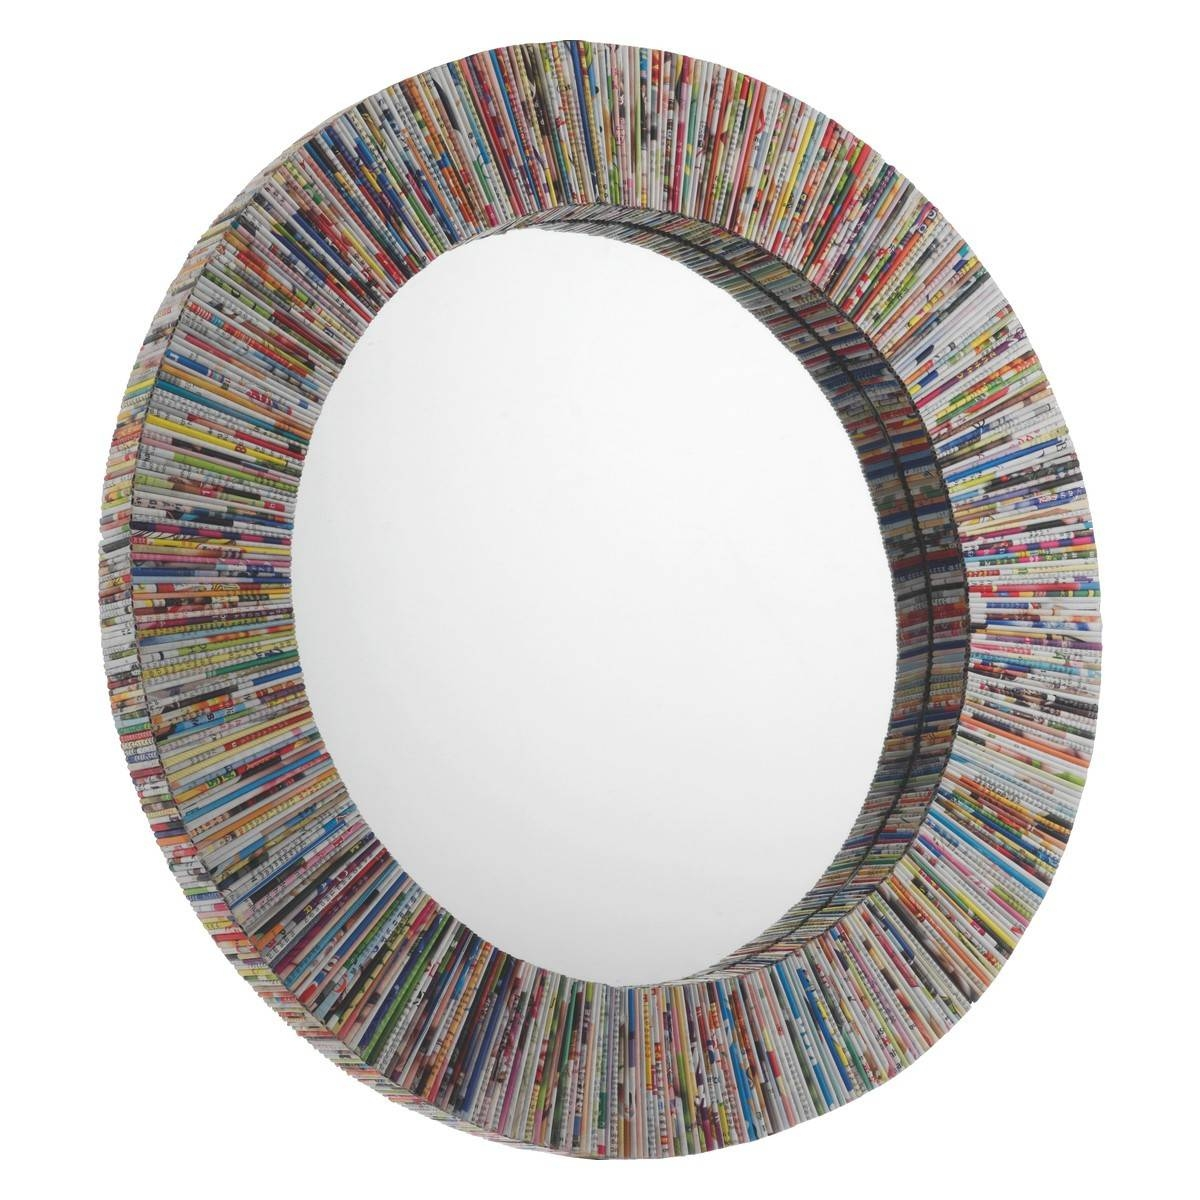 Round Table Mirrors Uk | Vanity And Nightstand Decoration regarding Round Large Mirrors (Image 22 of 25)